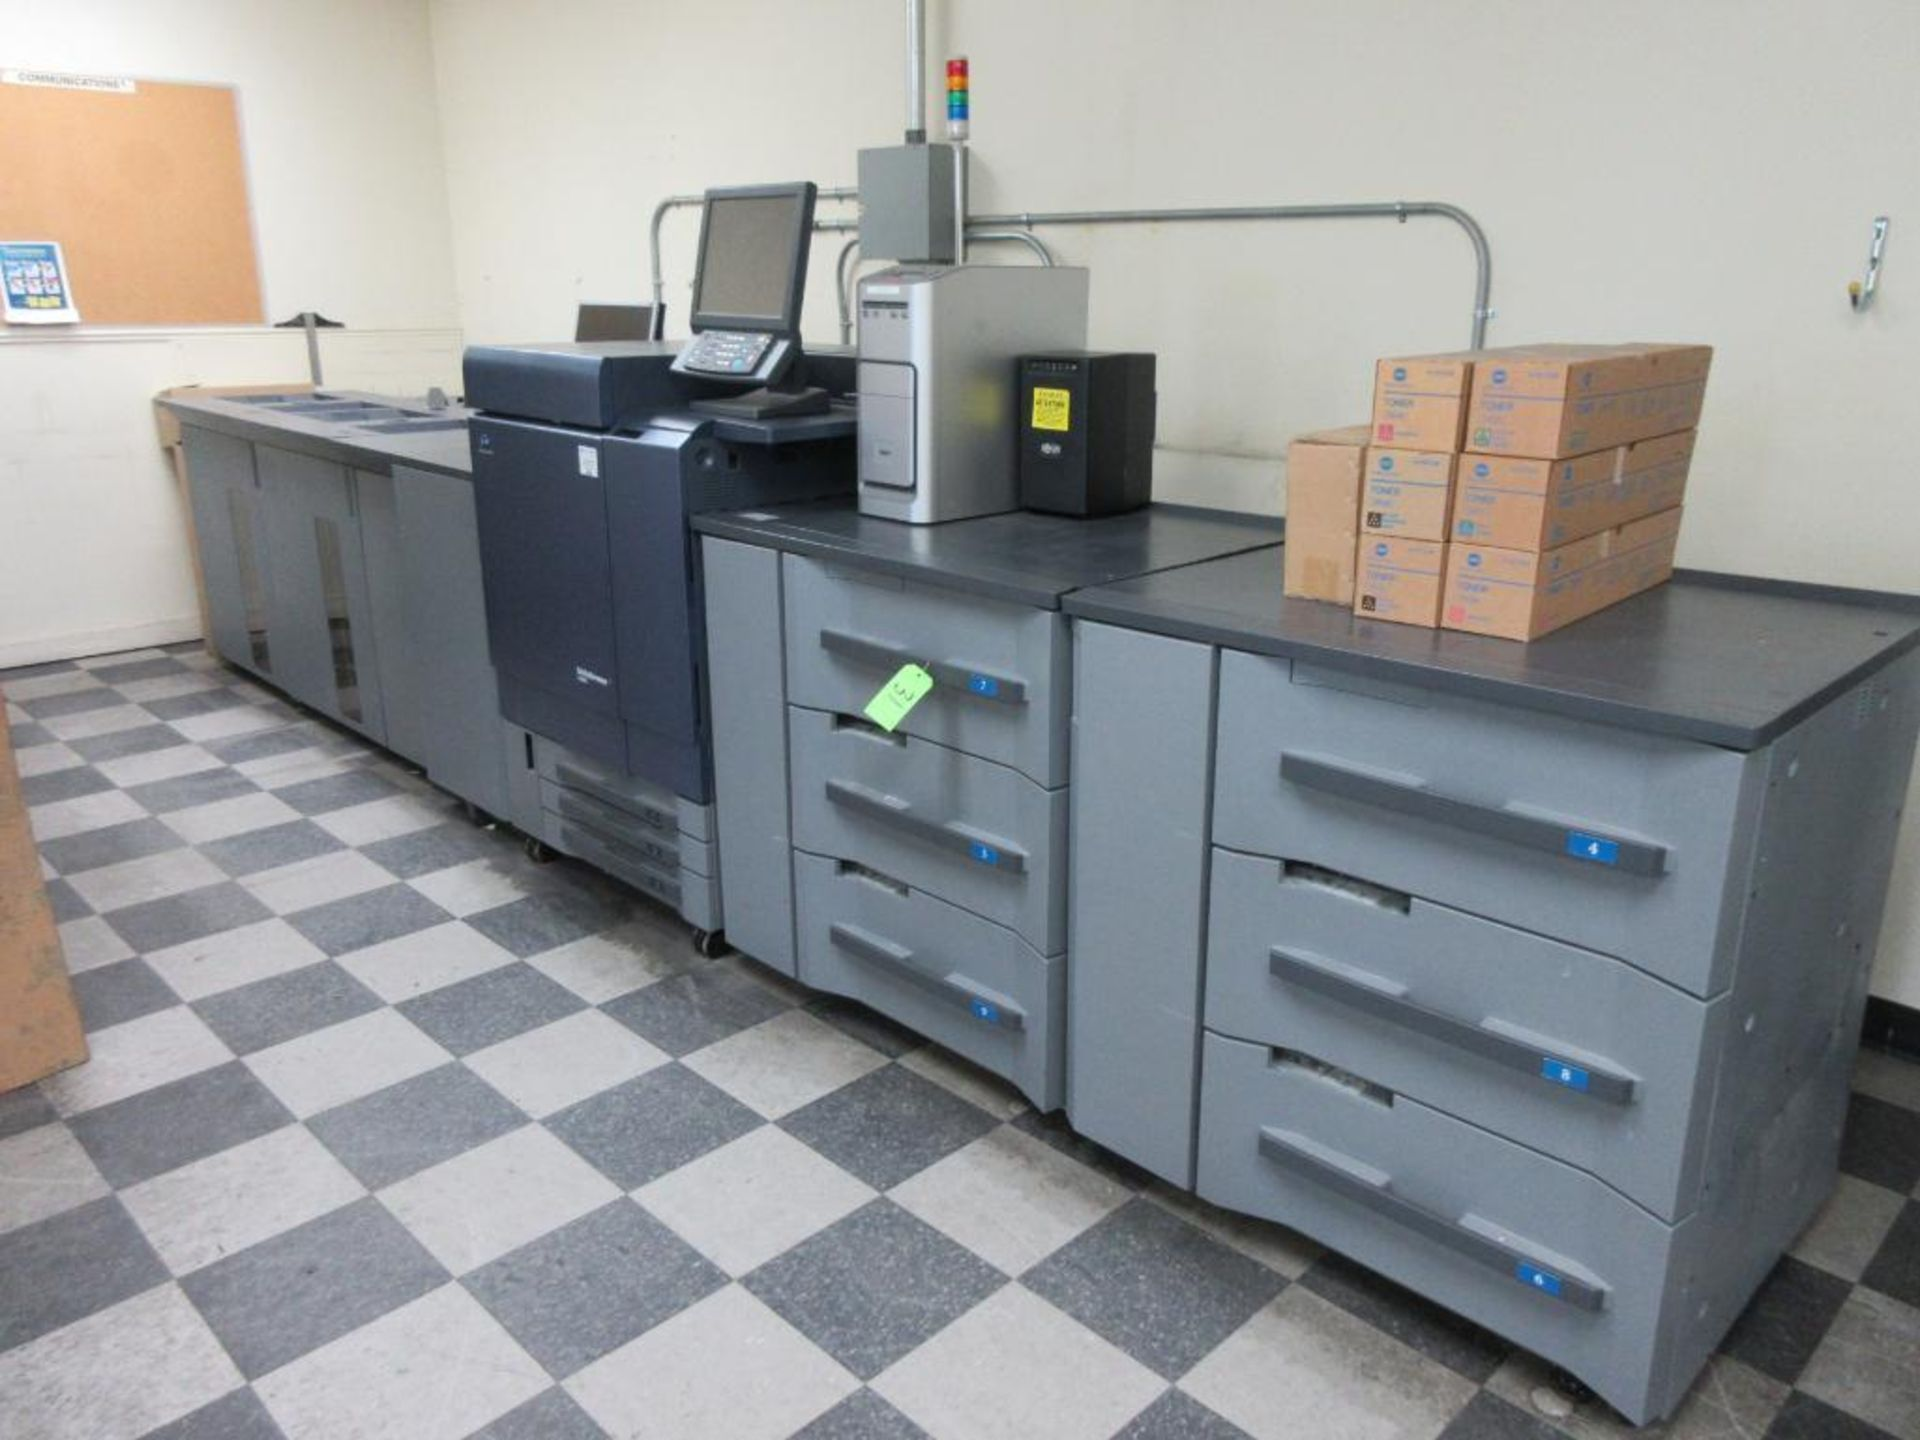 Konica Minolta Digital Press model bizhub press C8000 full colour & B/W 0 PPM capacity, components: